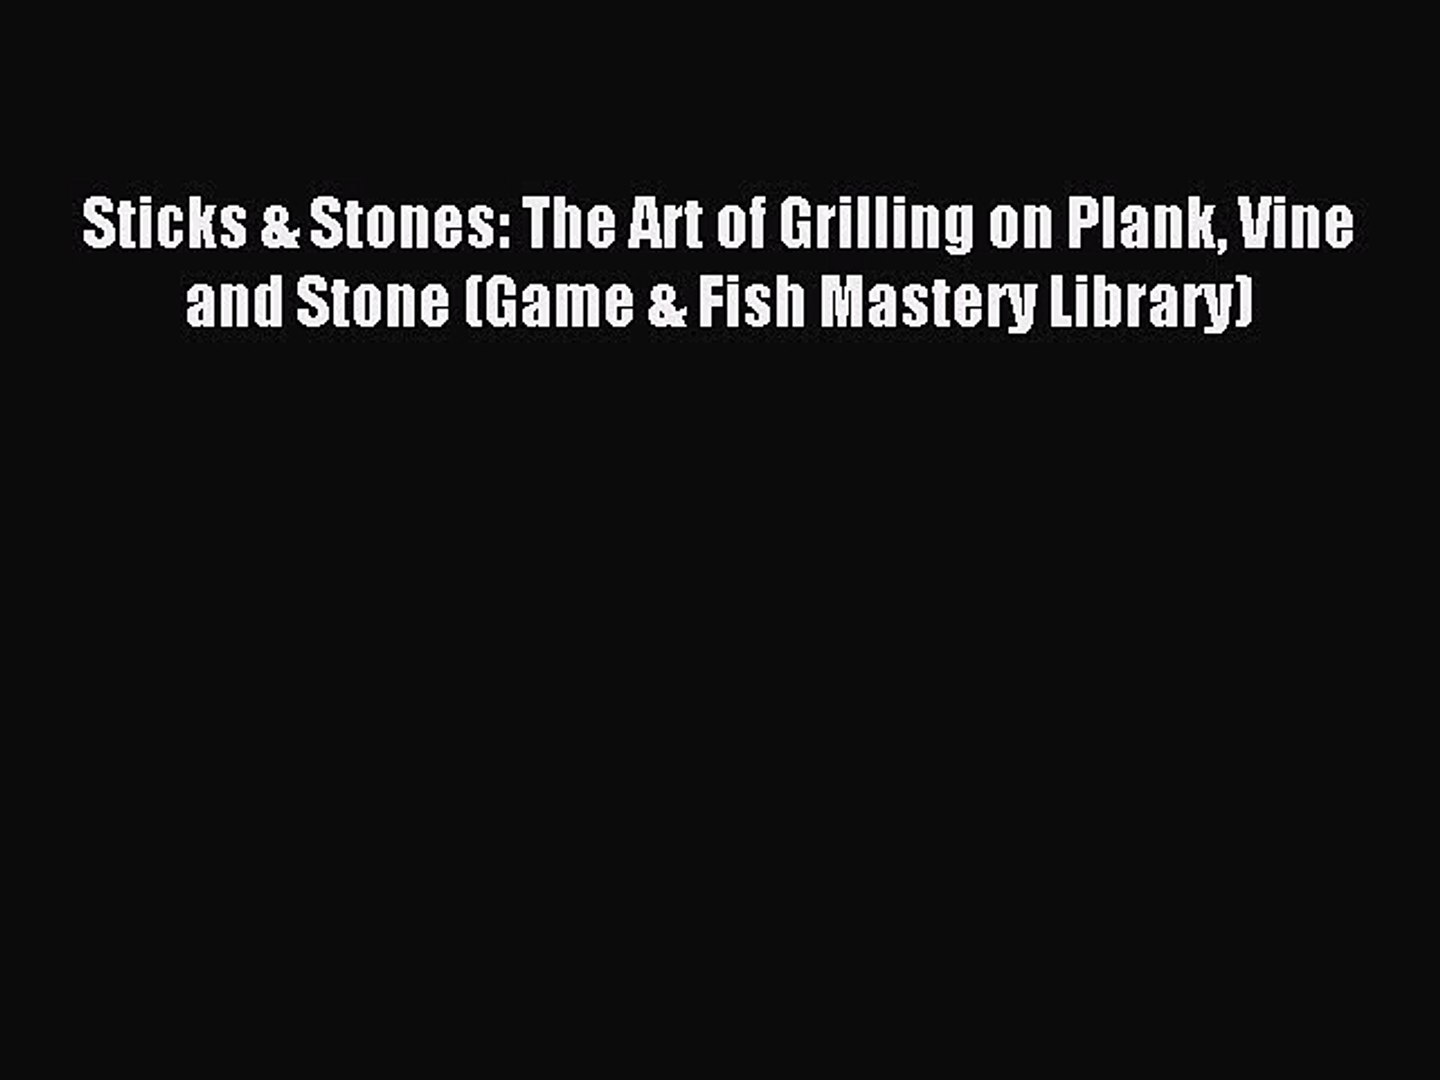 Read Sticks & Stones: The Art of Grilling on Plank Vine and Stone (Game & Fish Mastery Libra